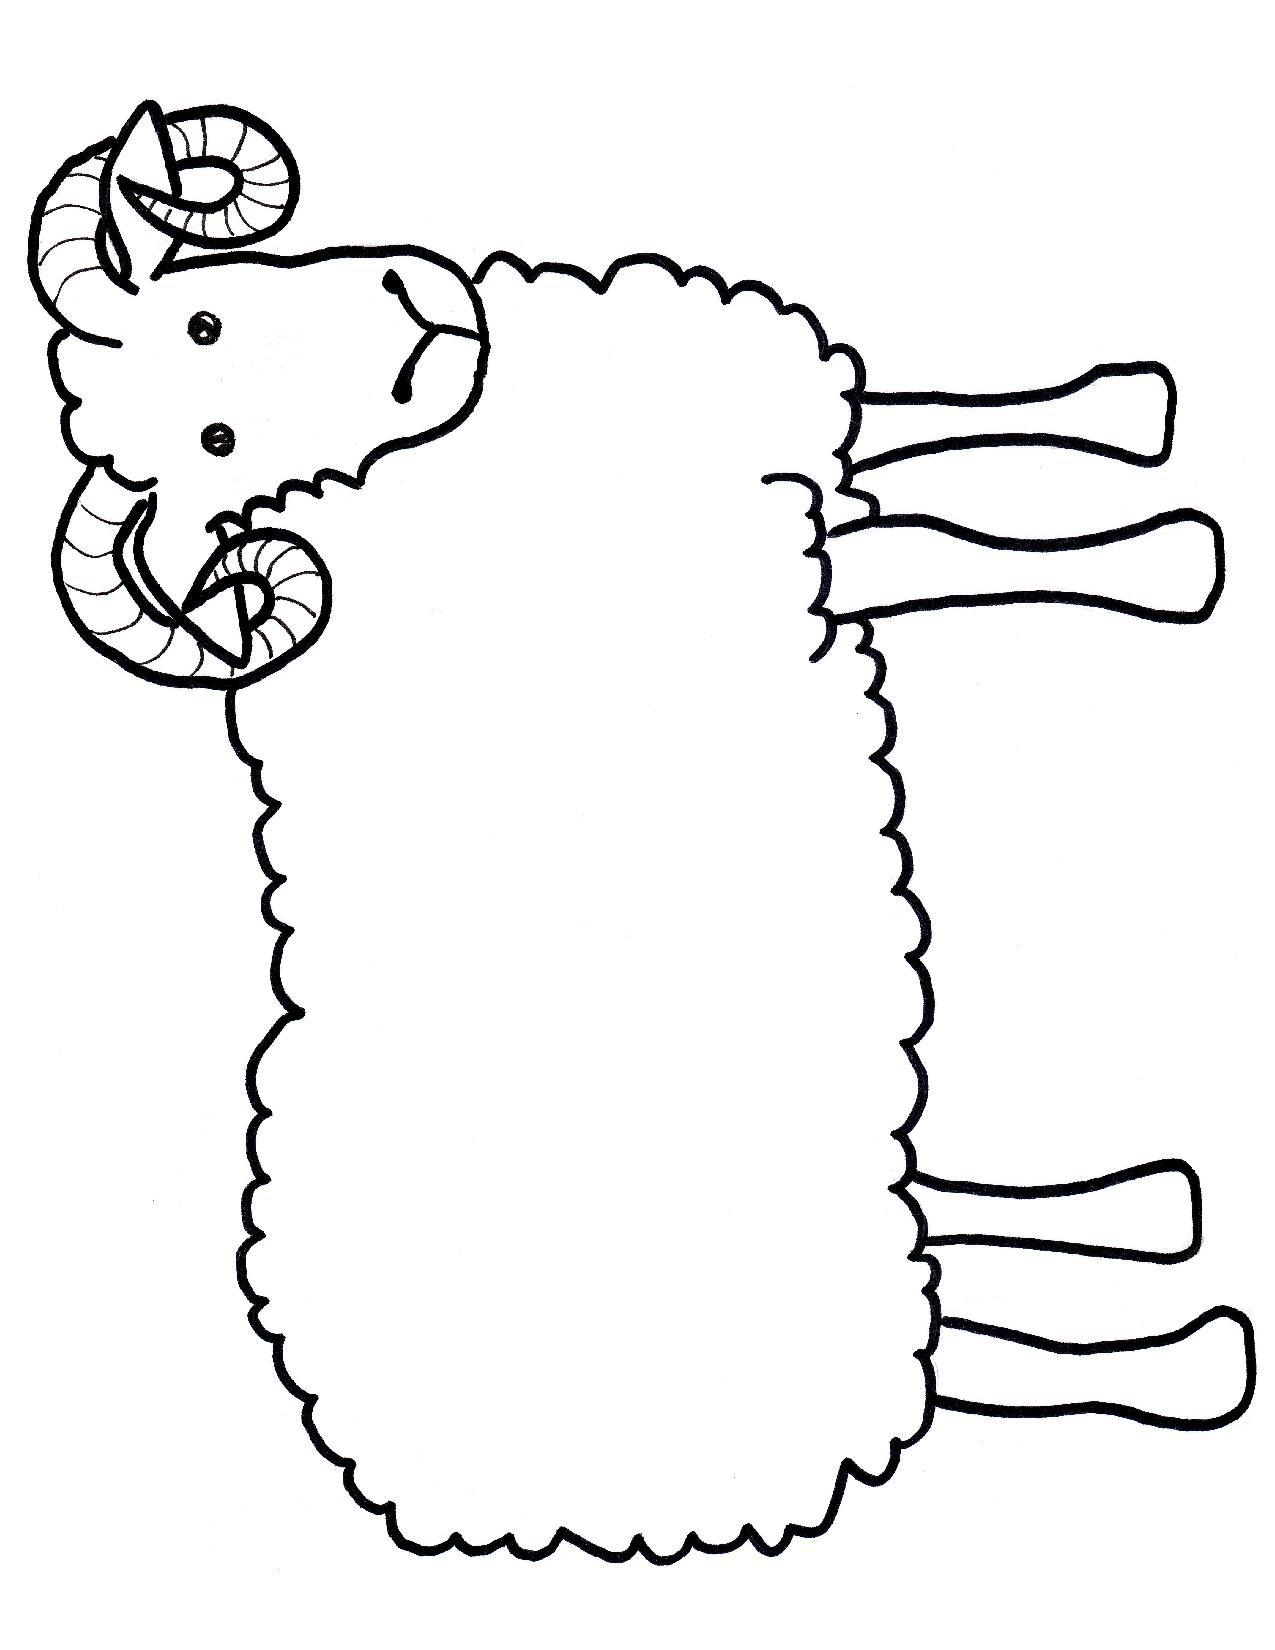 goat coloring page 5 as well  in addition goat meme know your rape likewise  besides nTXqMdMTB moreover  furthermore OA51 goat know your goat besides bulls head medium slate blue silhouette furthermore  likewise aa820c56810ec84c88719f7940cc2a50 in addition Library 20  209015LR. on mountain ram coloring pages printable